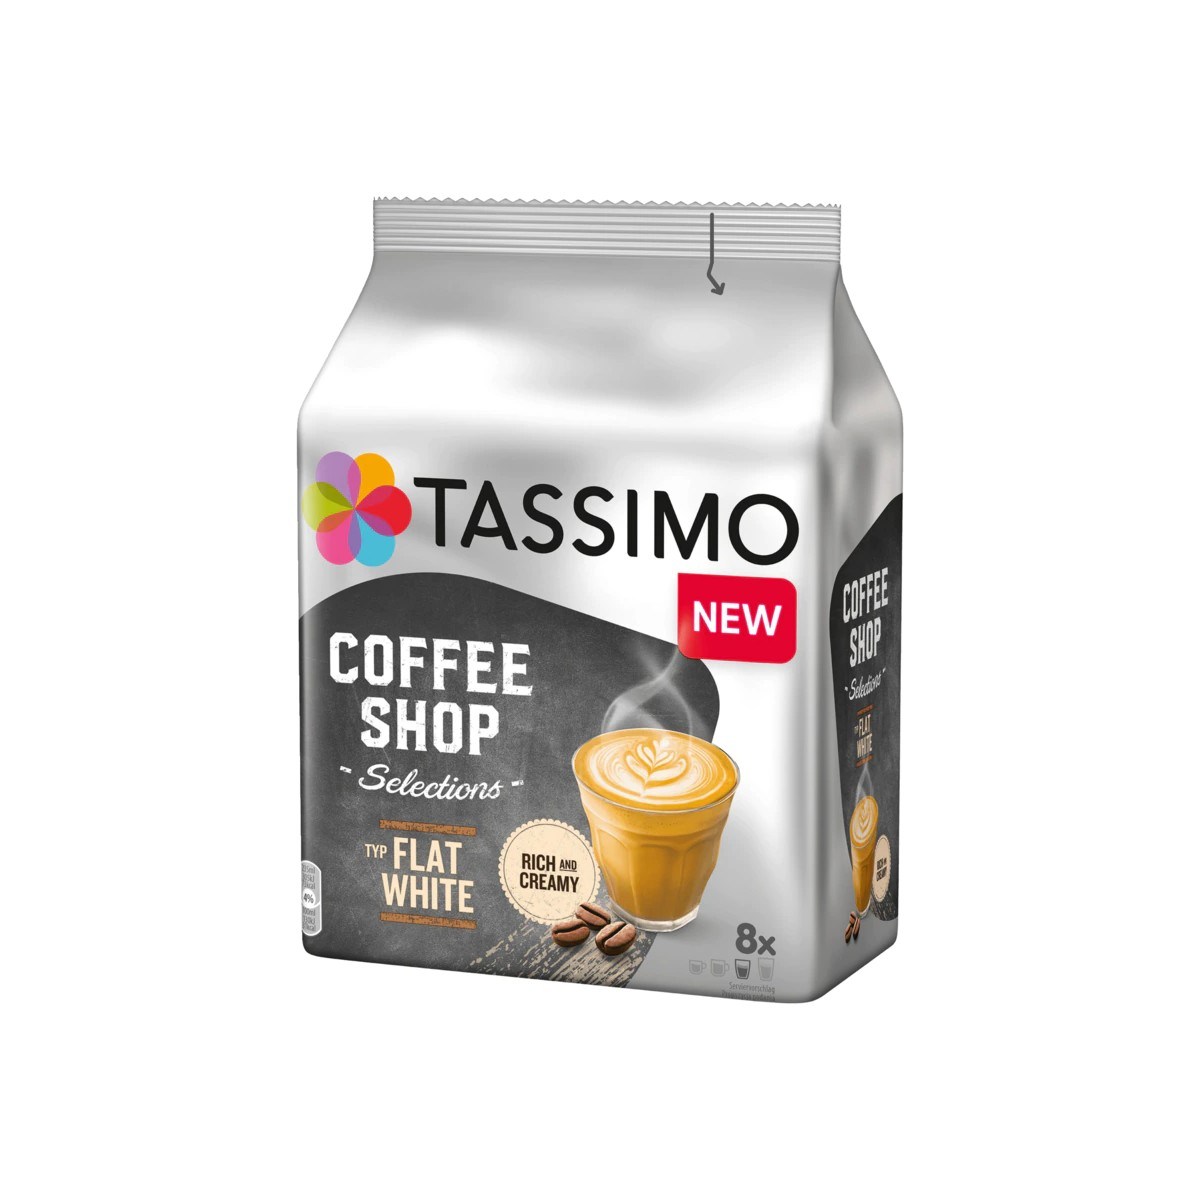 Buy Tassimo Kaffeekapseln Coffee Shop Selections Flat White in Berlin with delivery